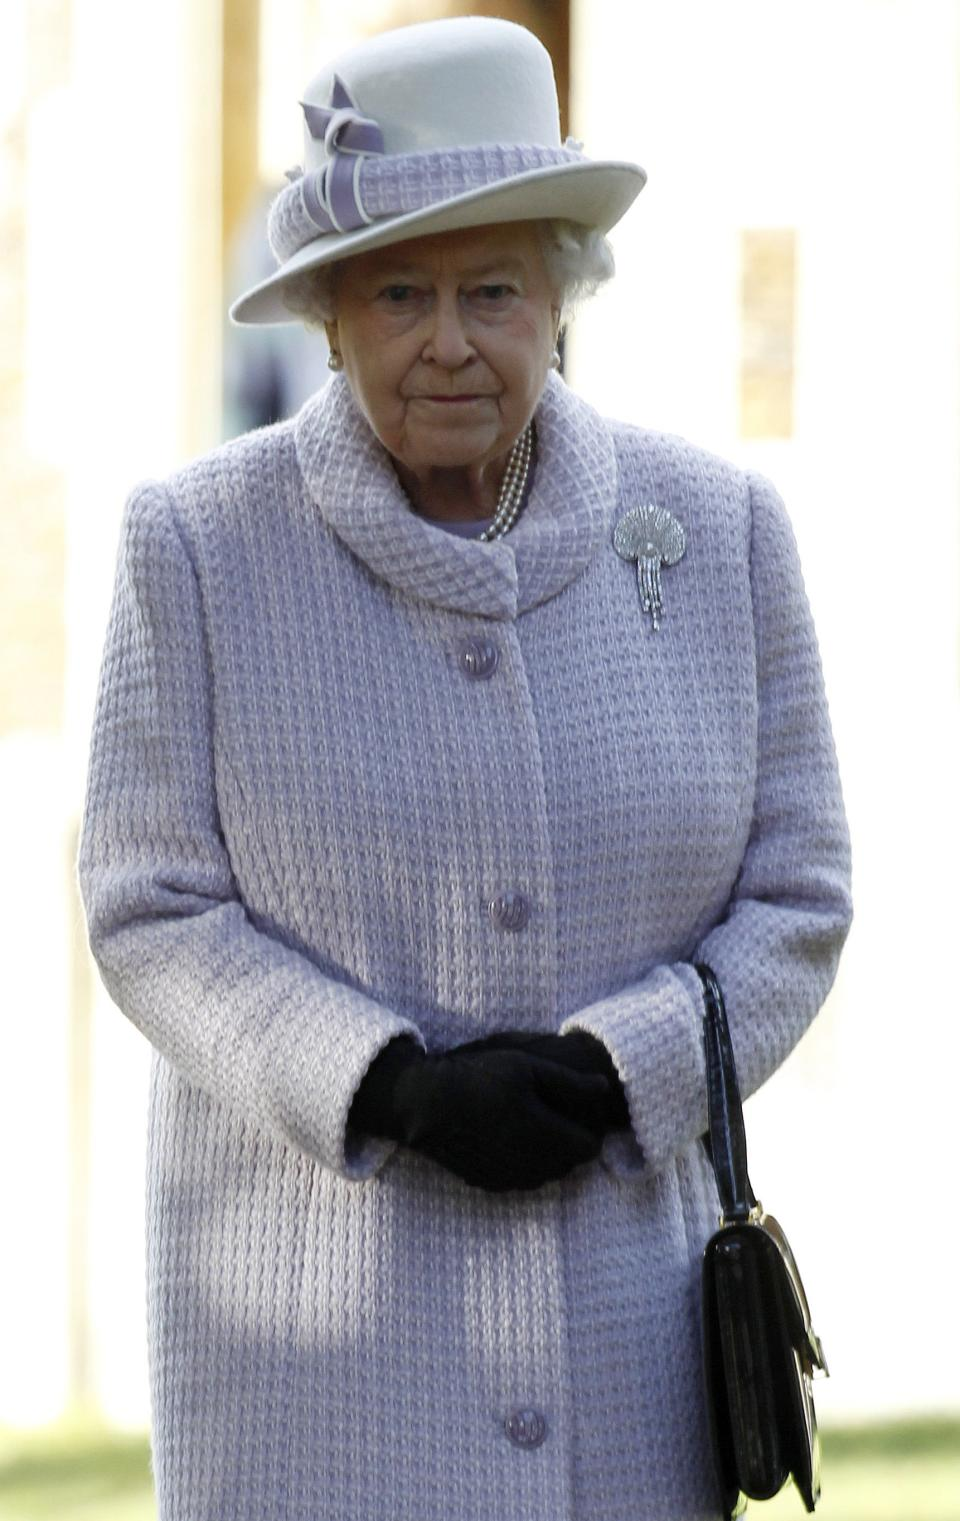 Britain's Queen Elizabeth II leaves after she and other members of the royal family attended a Christmas Service at St. Mary's church on the grounds of Sandringham Estate, the Queen's Norfolk retreat, England, Sunday, Dec. 25, 2011. (AP Photo/Lefteris Pitarakis)